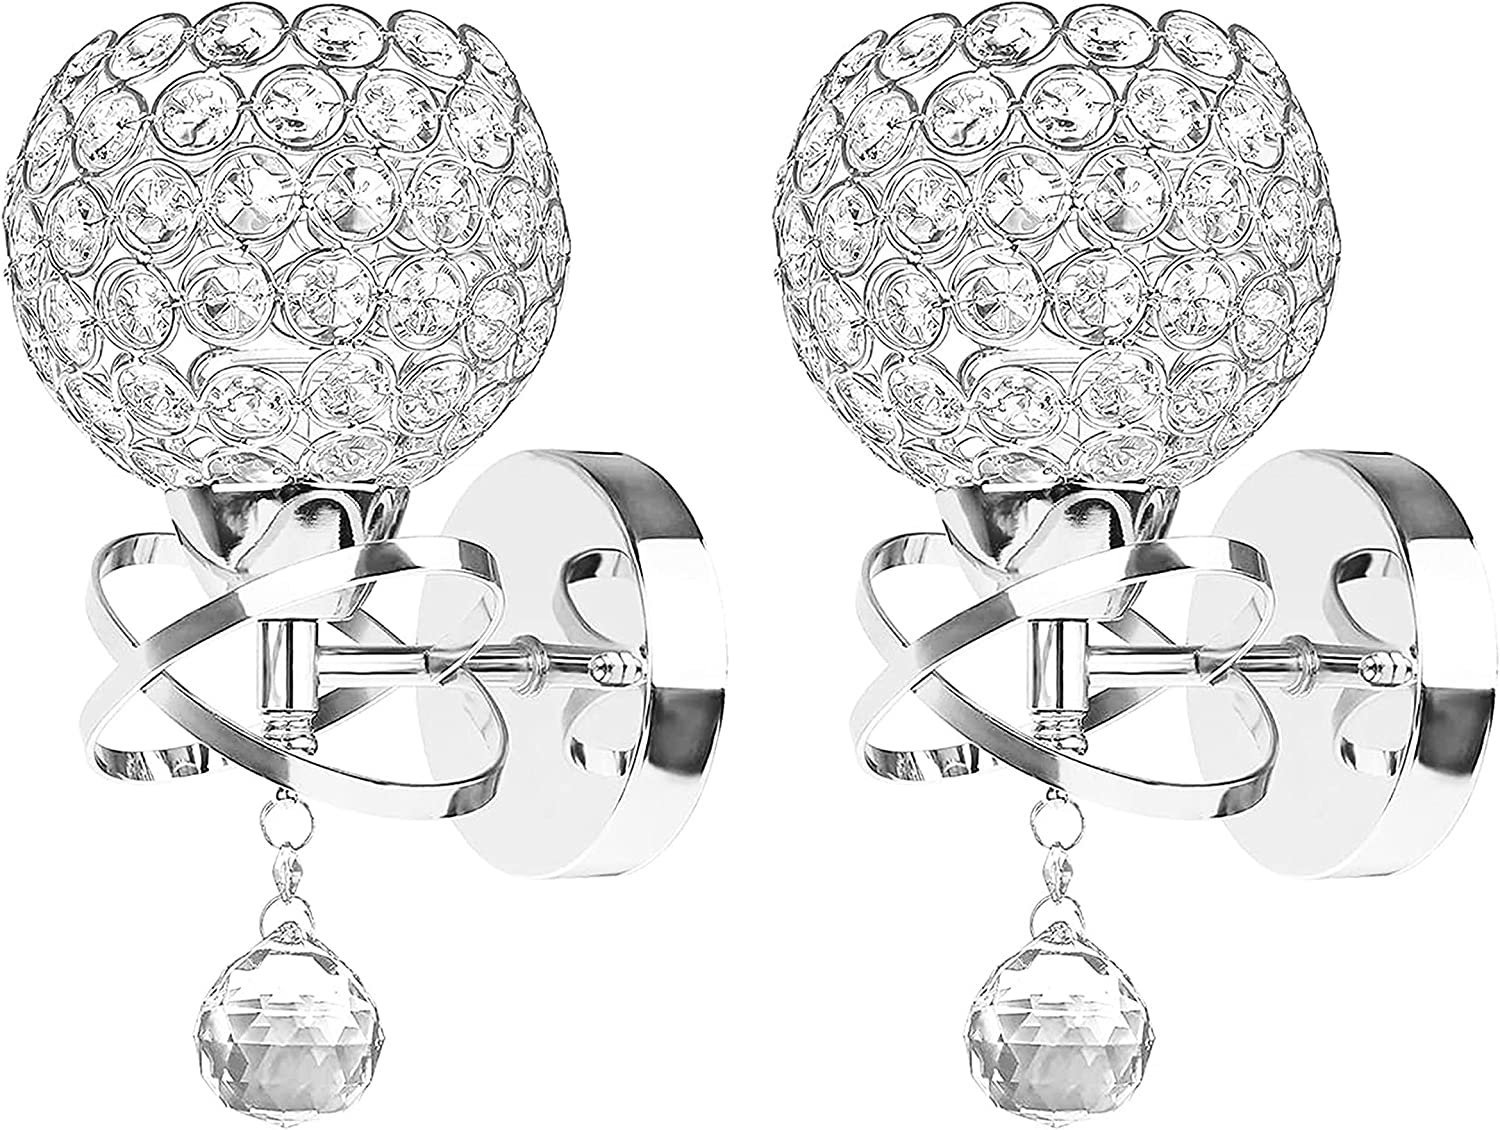 Crystal Wall Sconces Set of Two, Modern Wall Light Sconces Wall Lighting with Hanging Crystal Ball, Wall Mount Lamp Bedside Wall Lamp Silver Sconces Wall Decor for Bedroom Living Room Hallway